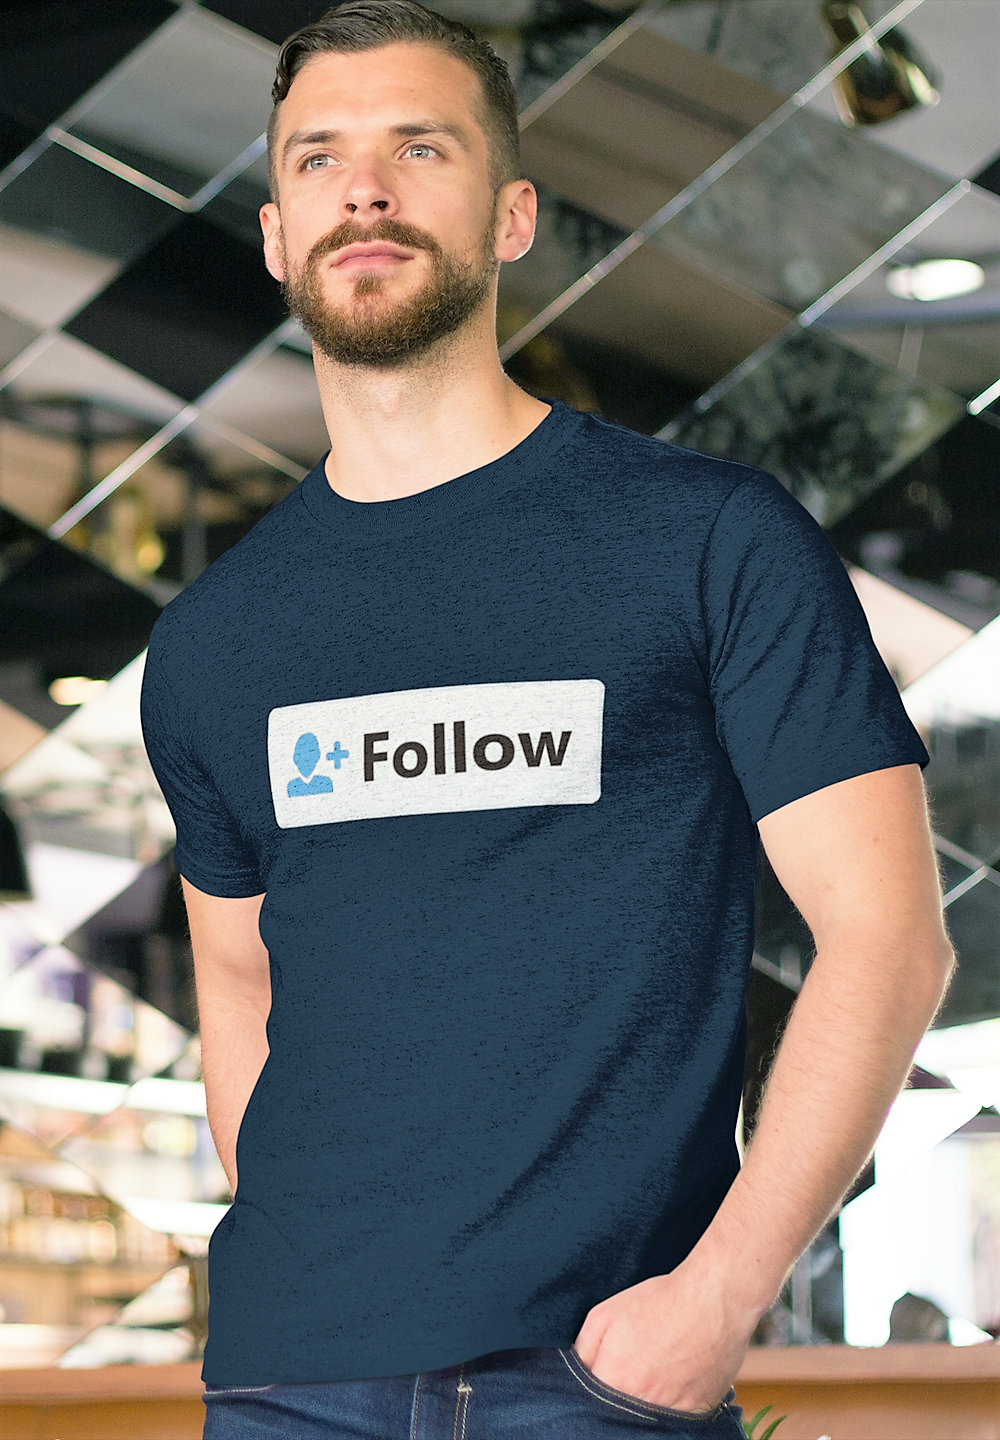 "Follow Me T Shirts - Only $17.86 Order Now ----->>> https://teespring.com/Follow-Me-T-Shirts  HOW TO ORDER? 1. Select style and color   2. Click ""Reserve it Now""   3. Select size and quantity   4. Enter shipping and billing information   5. Done! Simple as that --------------------------------------------- #CustomTwitterTShirt #FacebookTShirtForSale #FollowMeTShirts #FunnyTwitterTShirts #GoogleShoppingTShirts #TeespringBestTShirts #TwitterTShirt #TwitterTshirt"